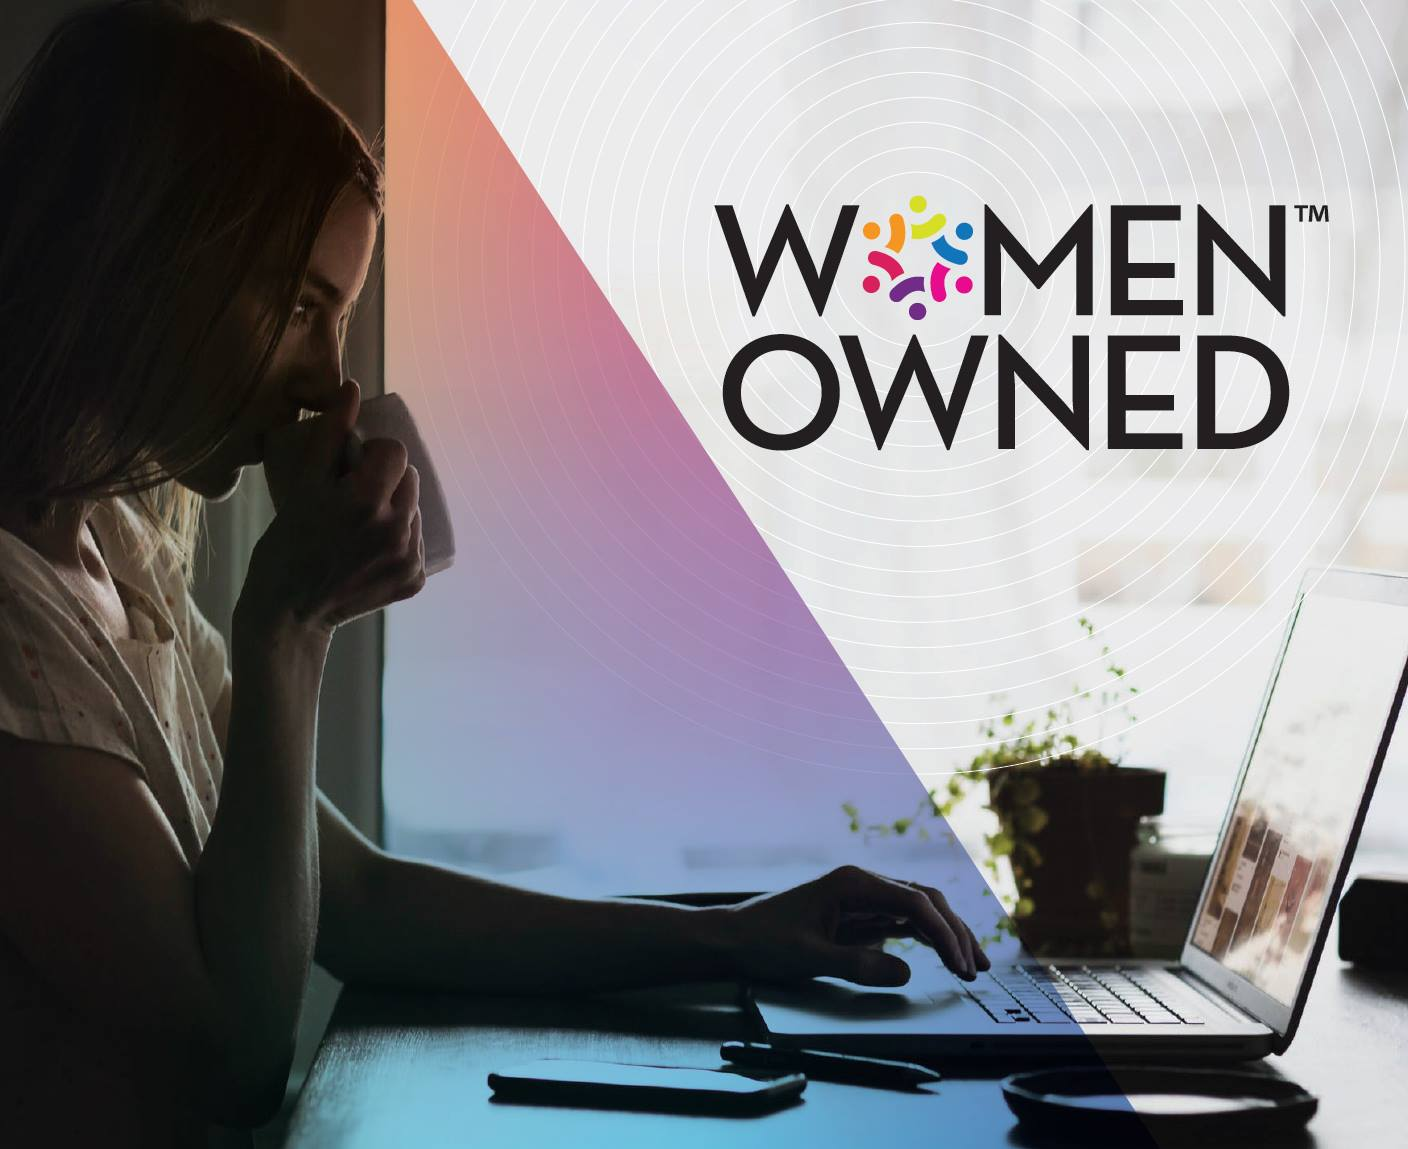 women-owned-banner.jpg